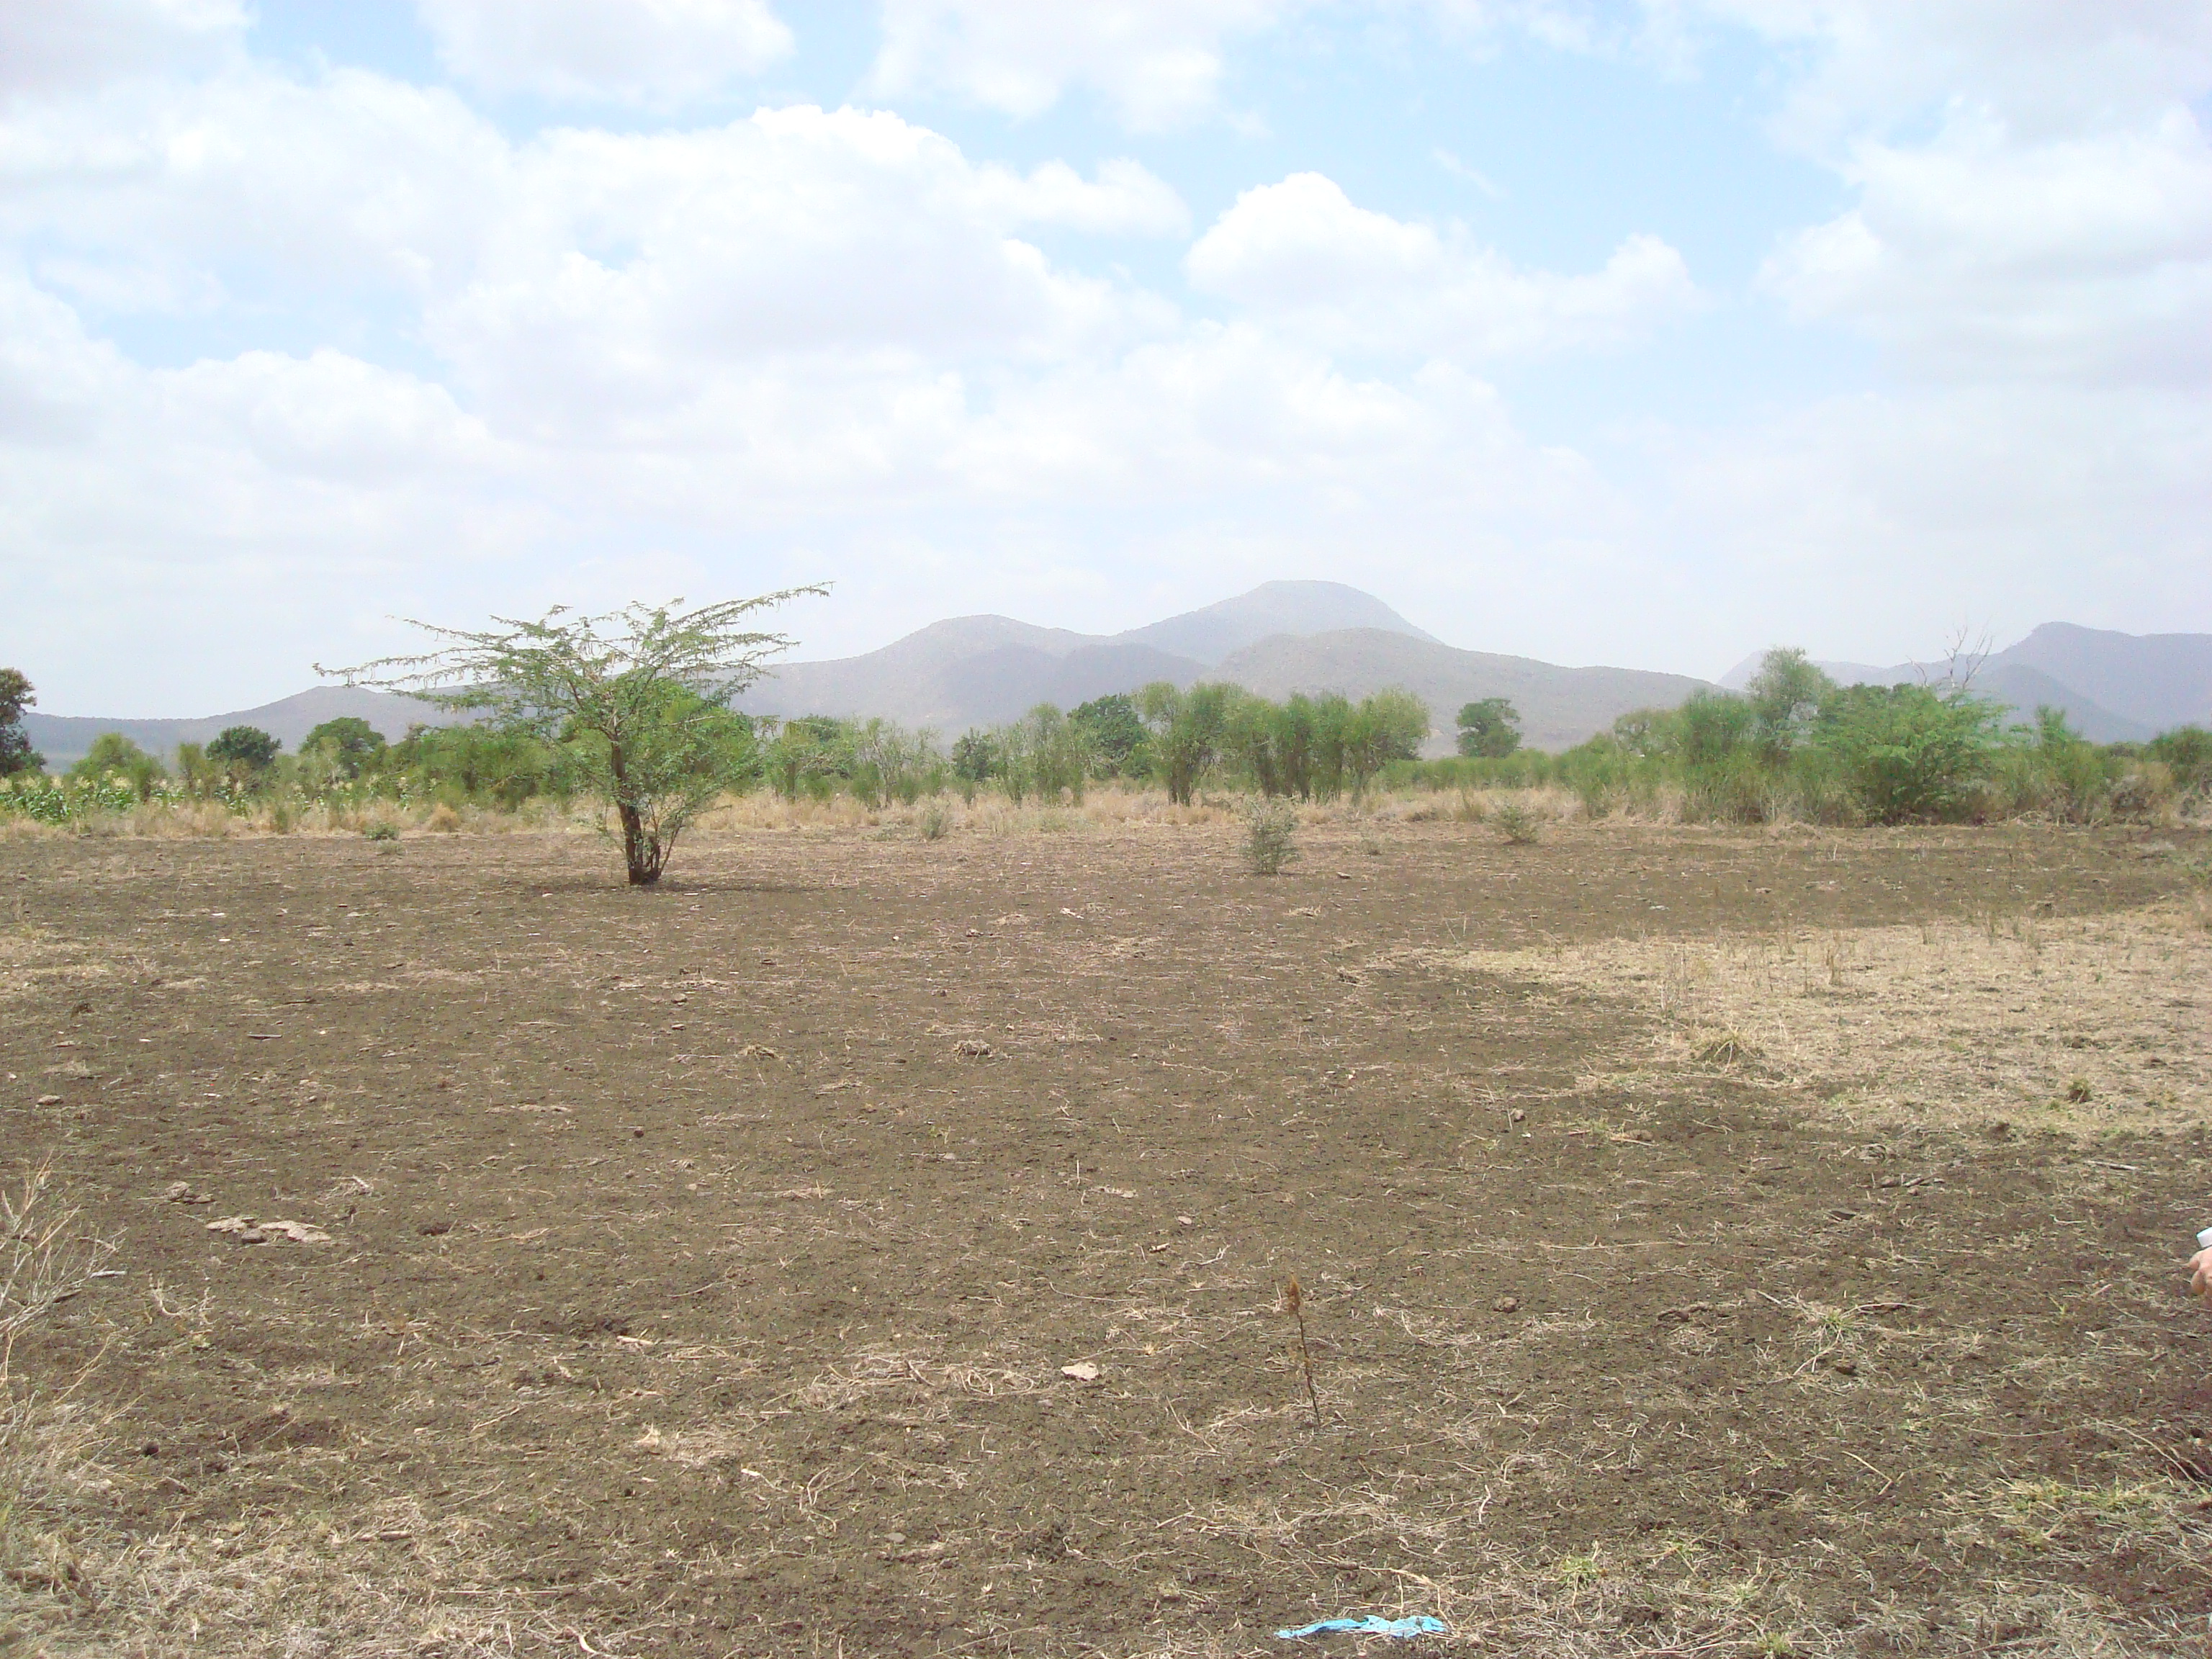 Site of school/church facility in Isiolo.